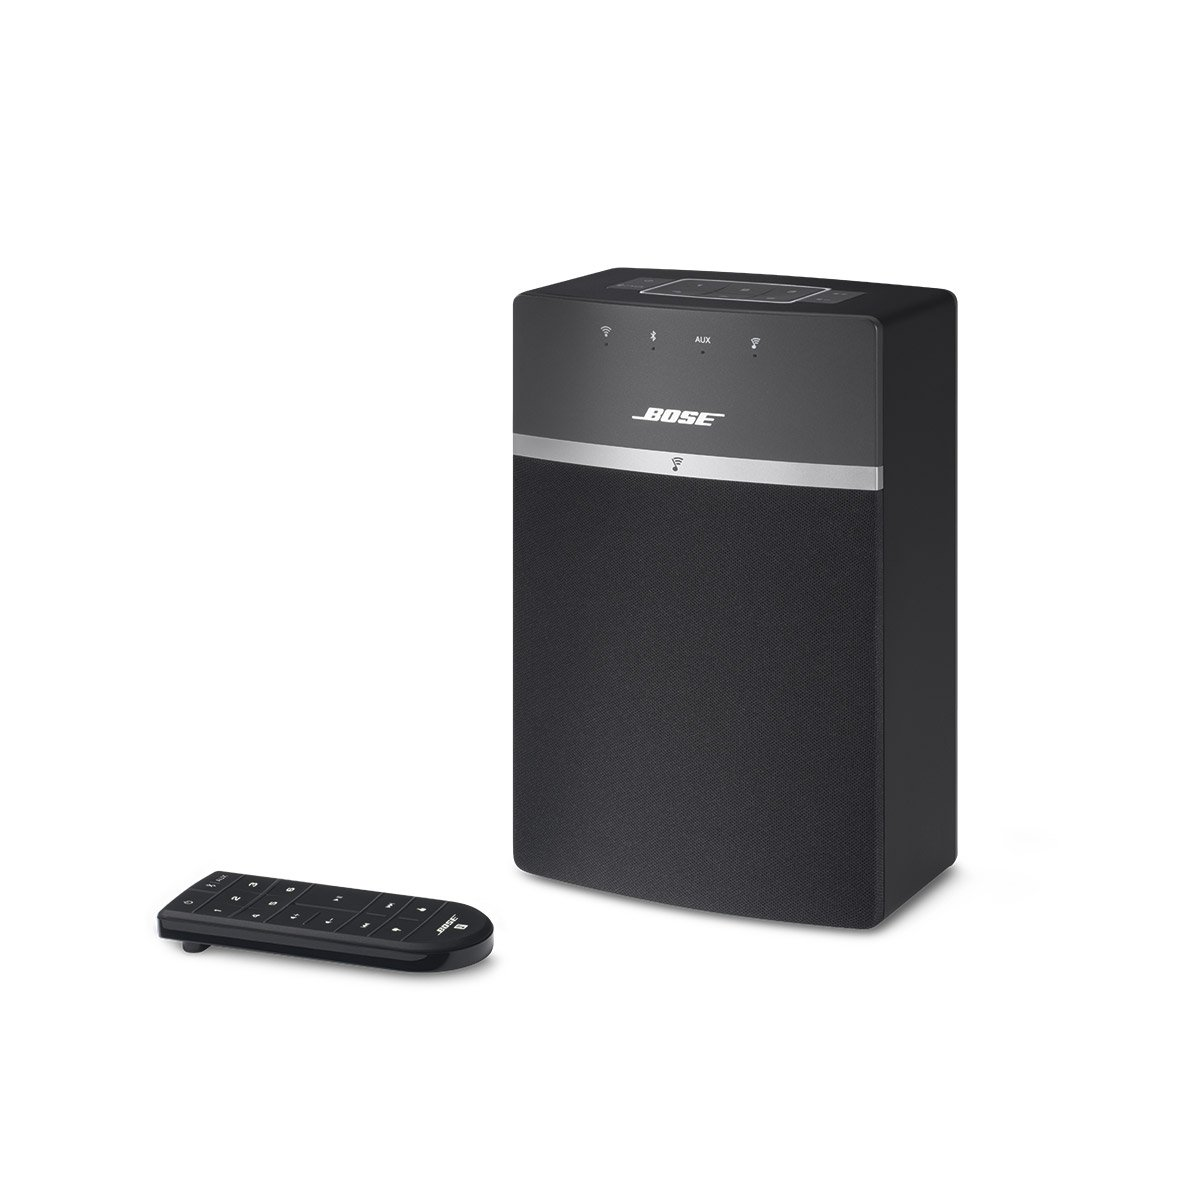 Imagenes De Bose >> Bose Soundtouch 10 Wireless Bluetooth Wi Fi Speaker System Black